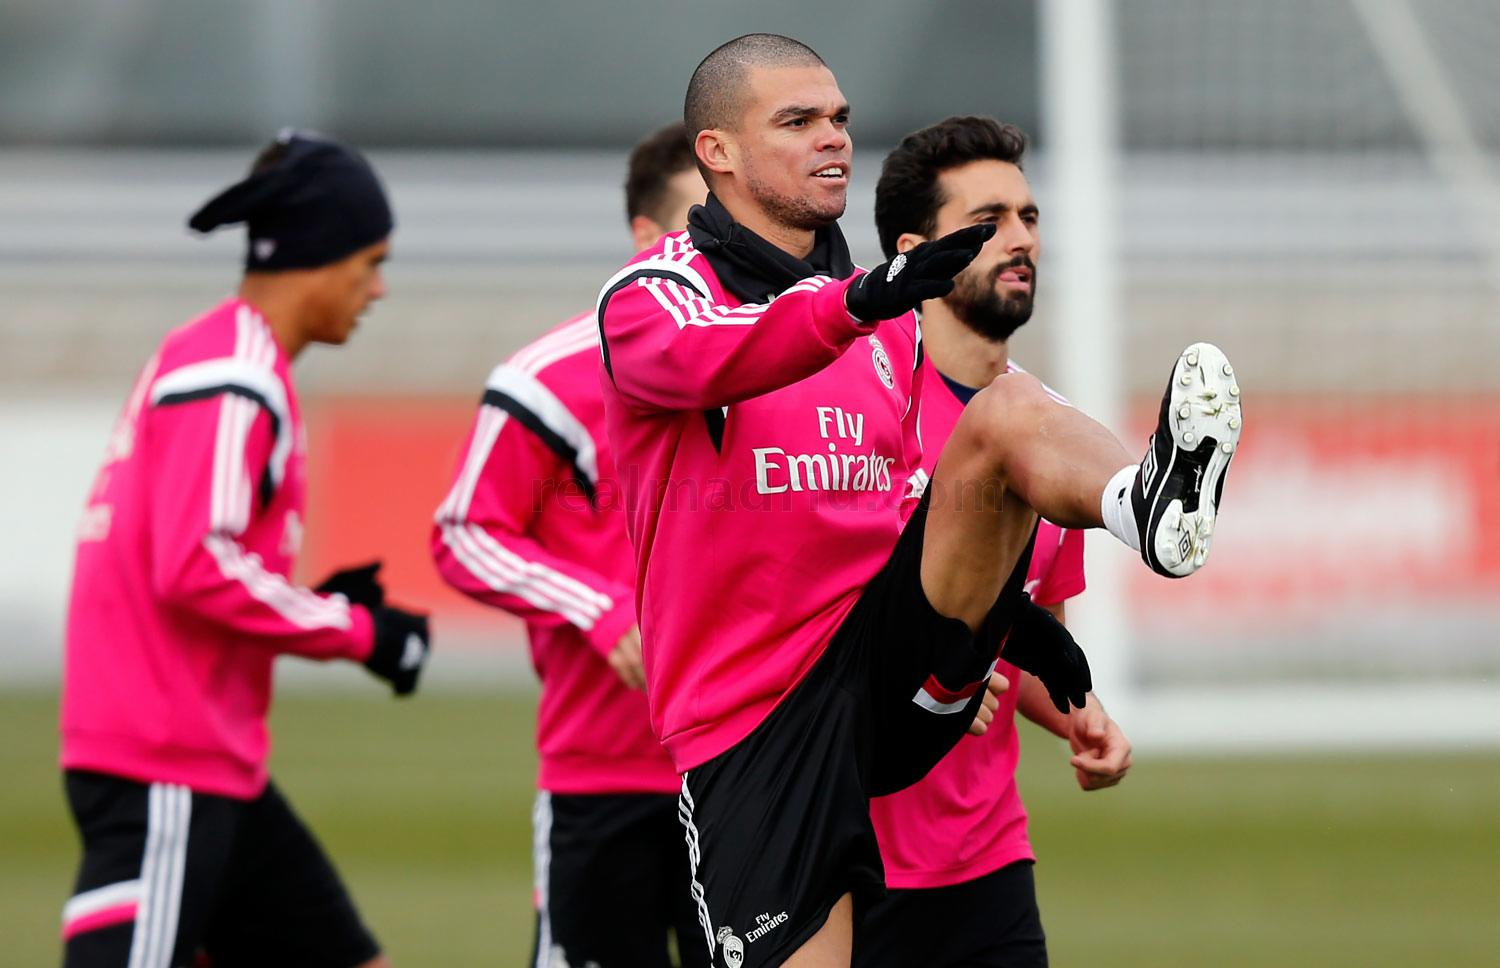 Real Madrid - Entrenamiento del Real Madrid - 12-02-2015